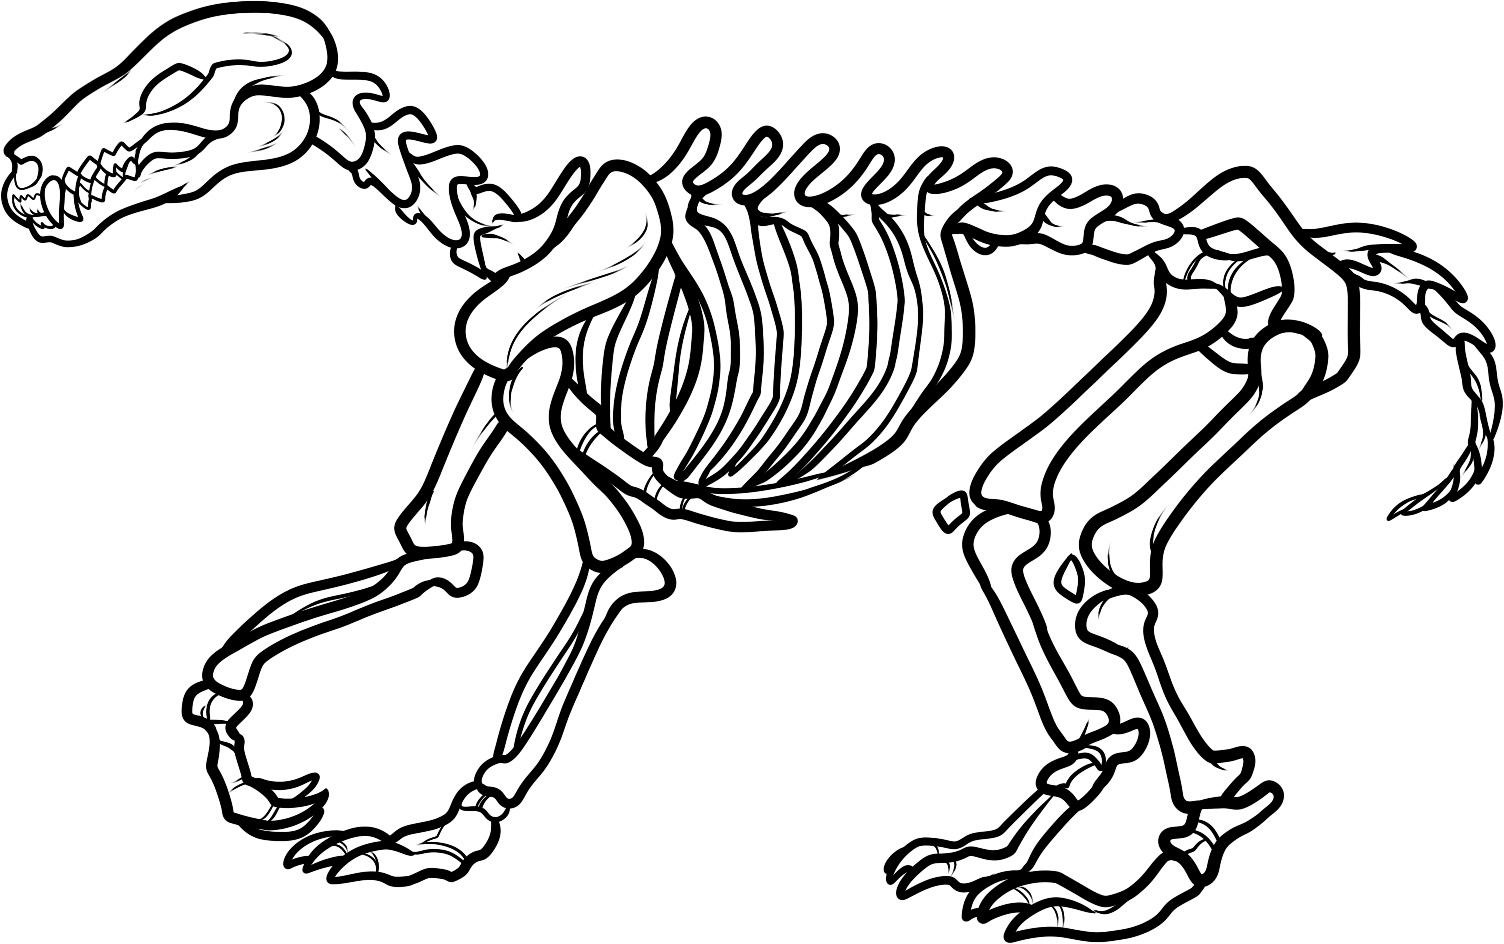 Dinosaur Skeleton Coloring Page | Clipart Panda - Free Clipart Images